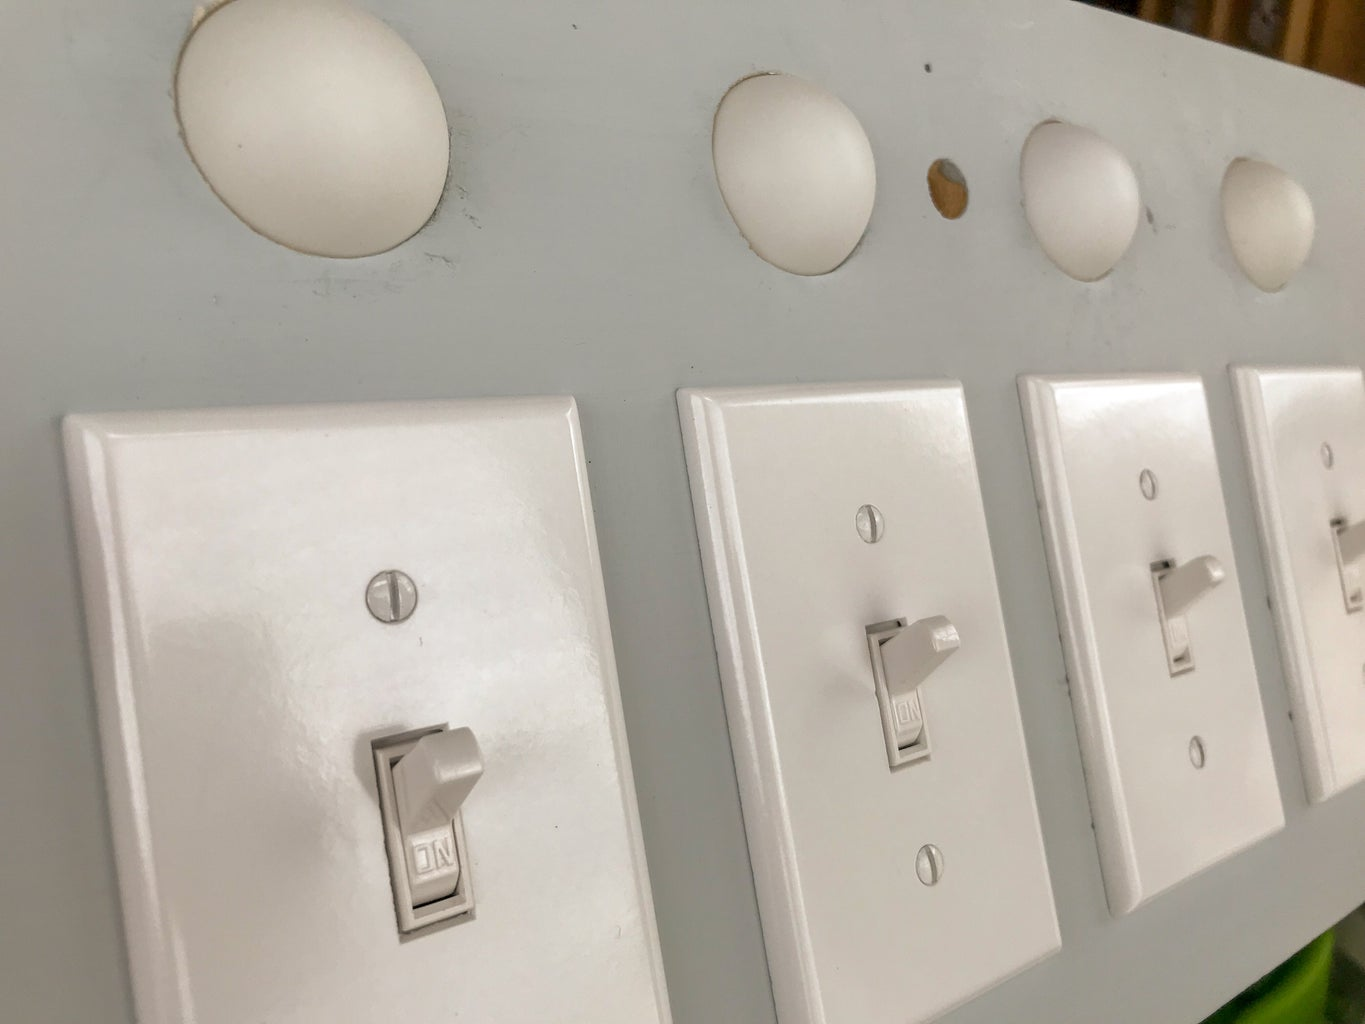 Mount the Switch Plate Covers